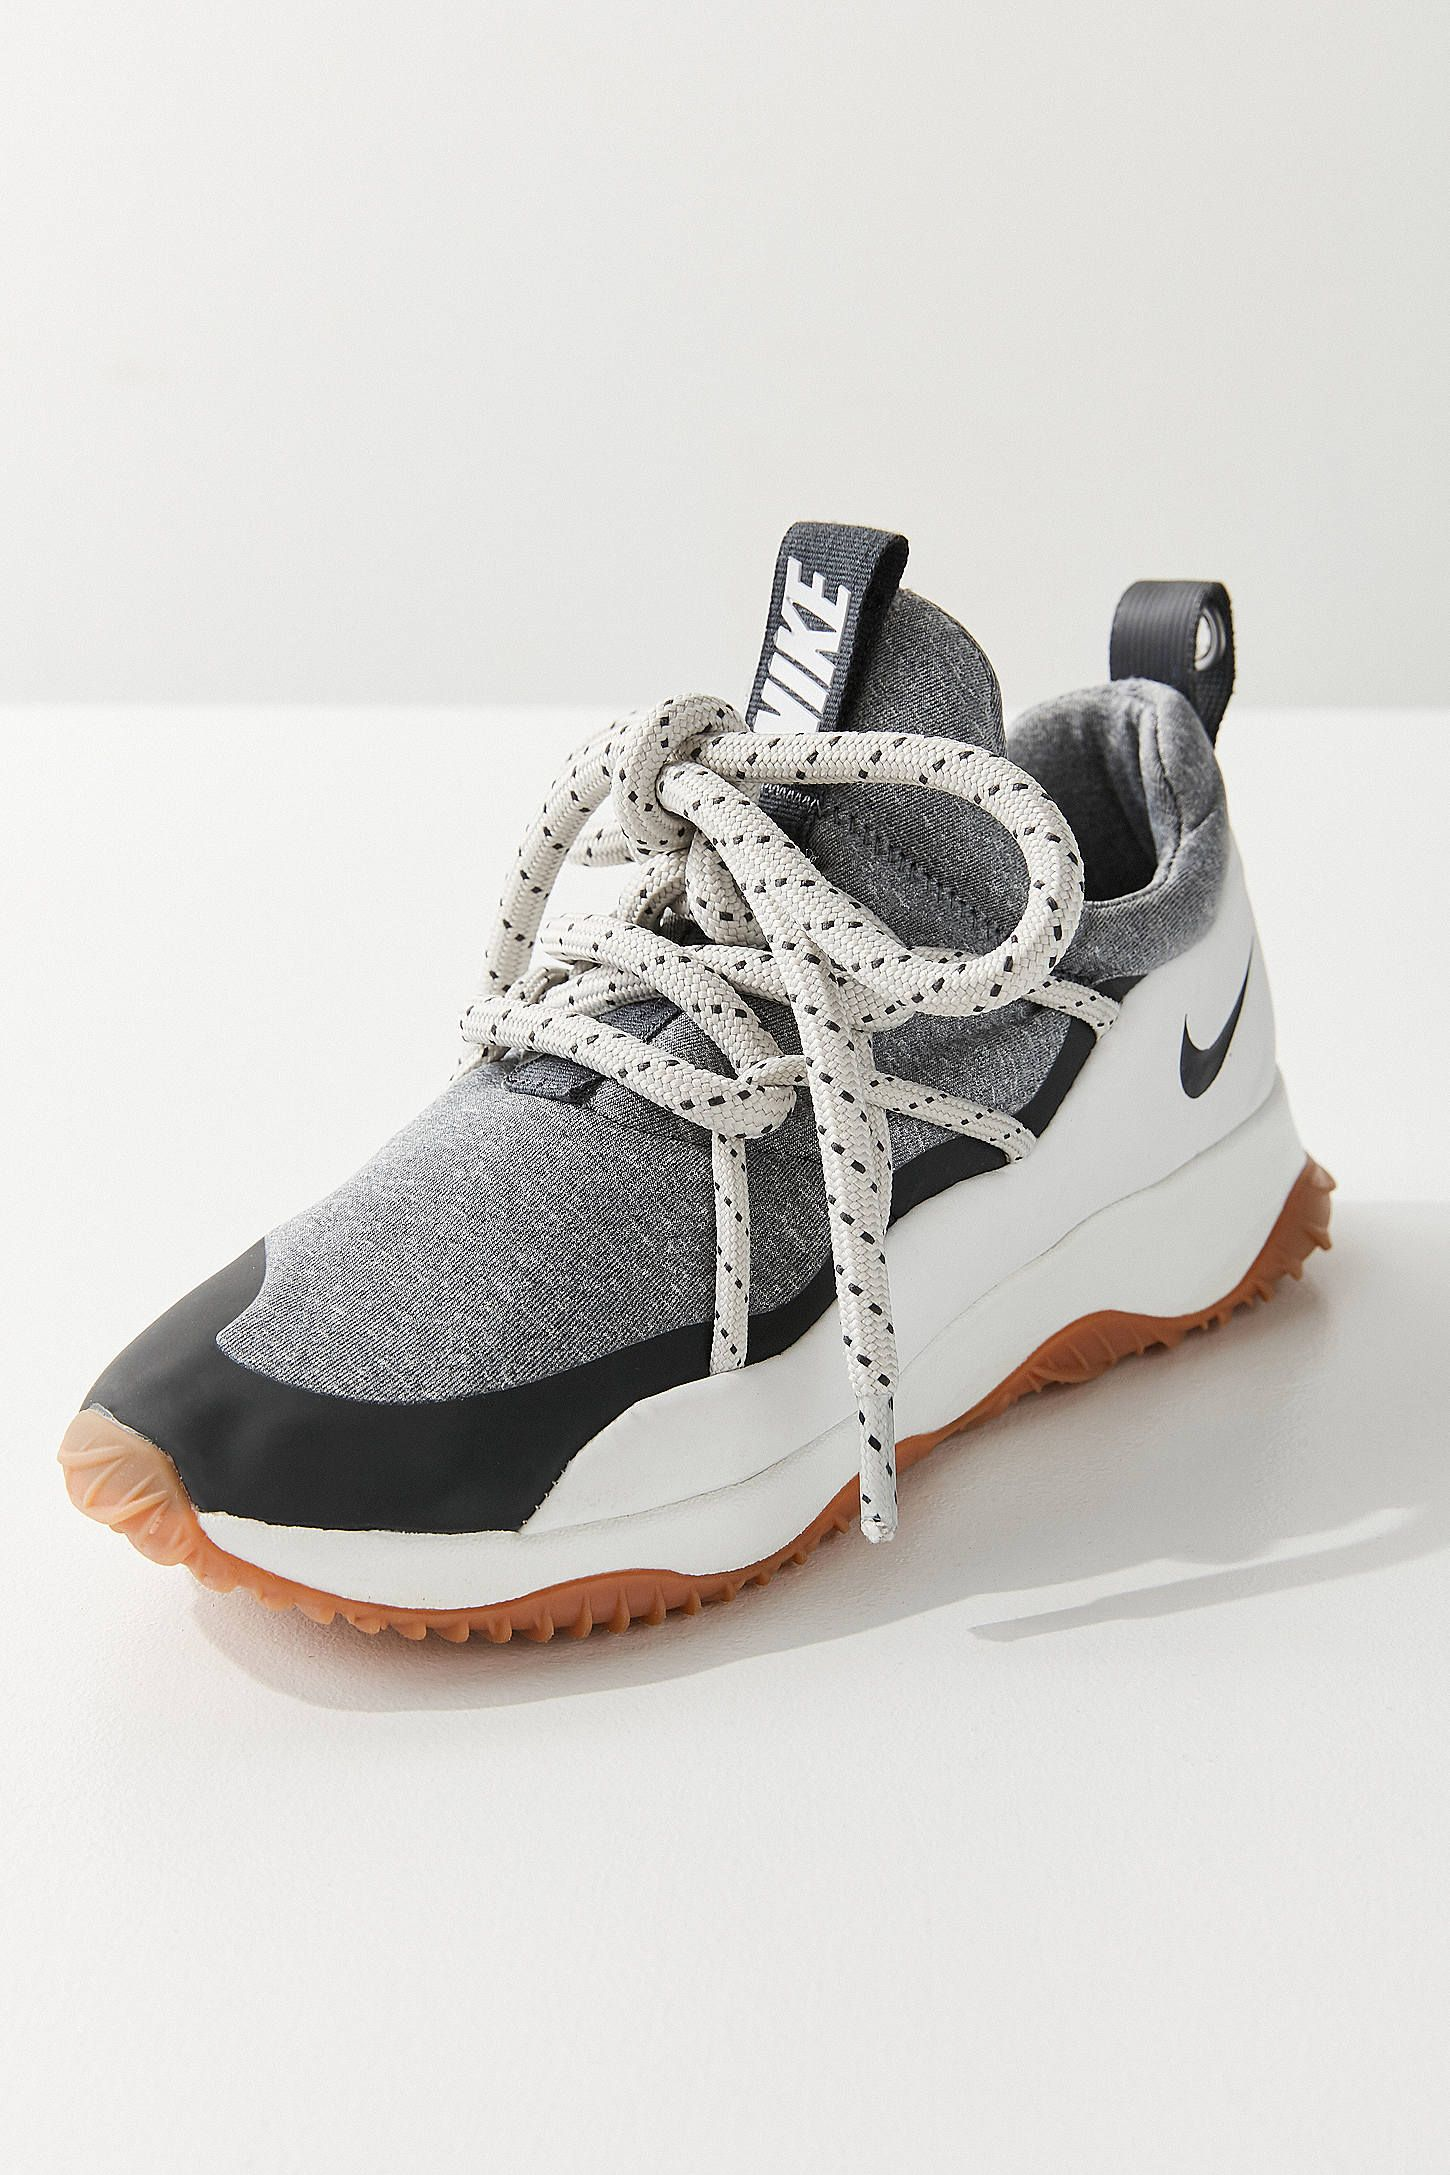 d6d9cc38eb9 Shop Nike City Loop Sneaker at Urban Outfitters today. We carry all the  latest styles